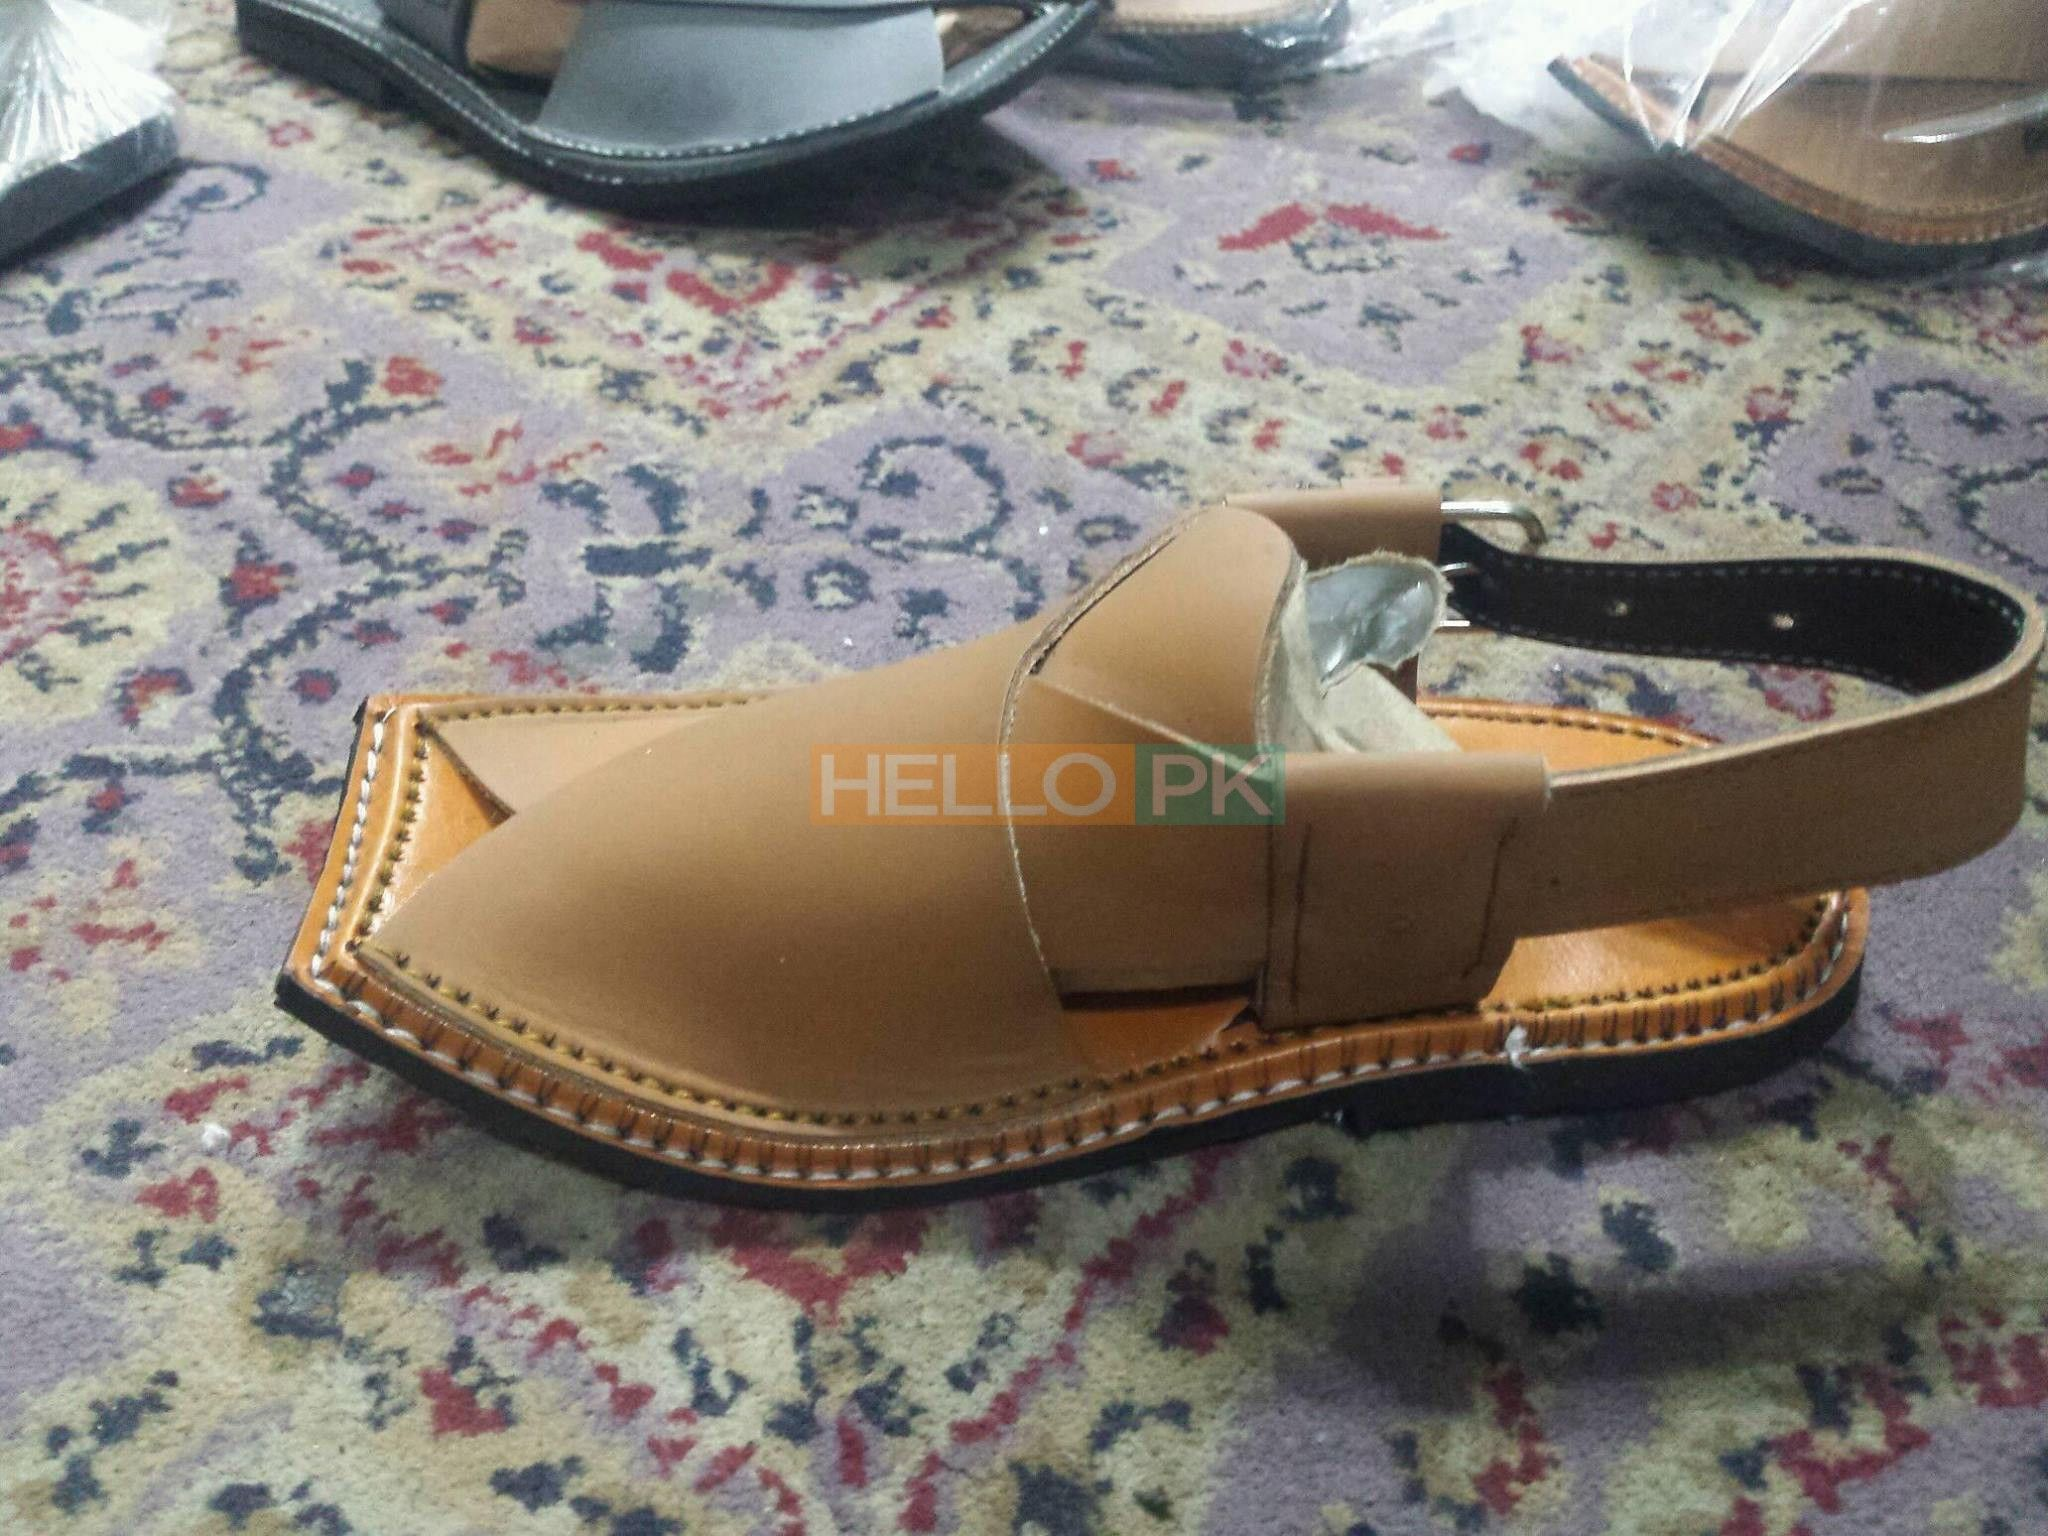 Peshawri Chappal Free Home Delivery Buy And Sell Delivery Leather